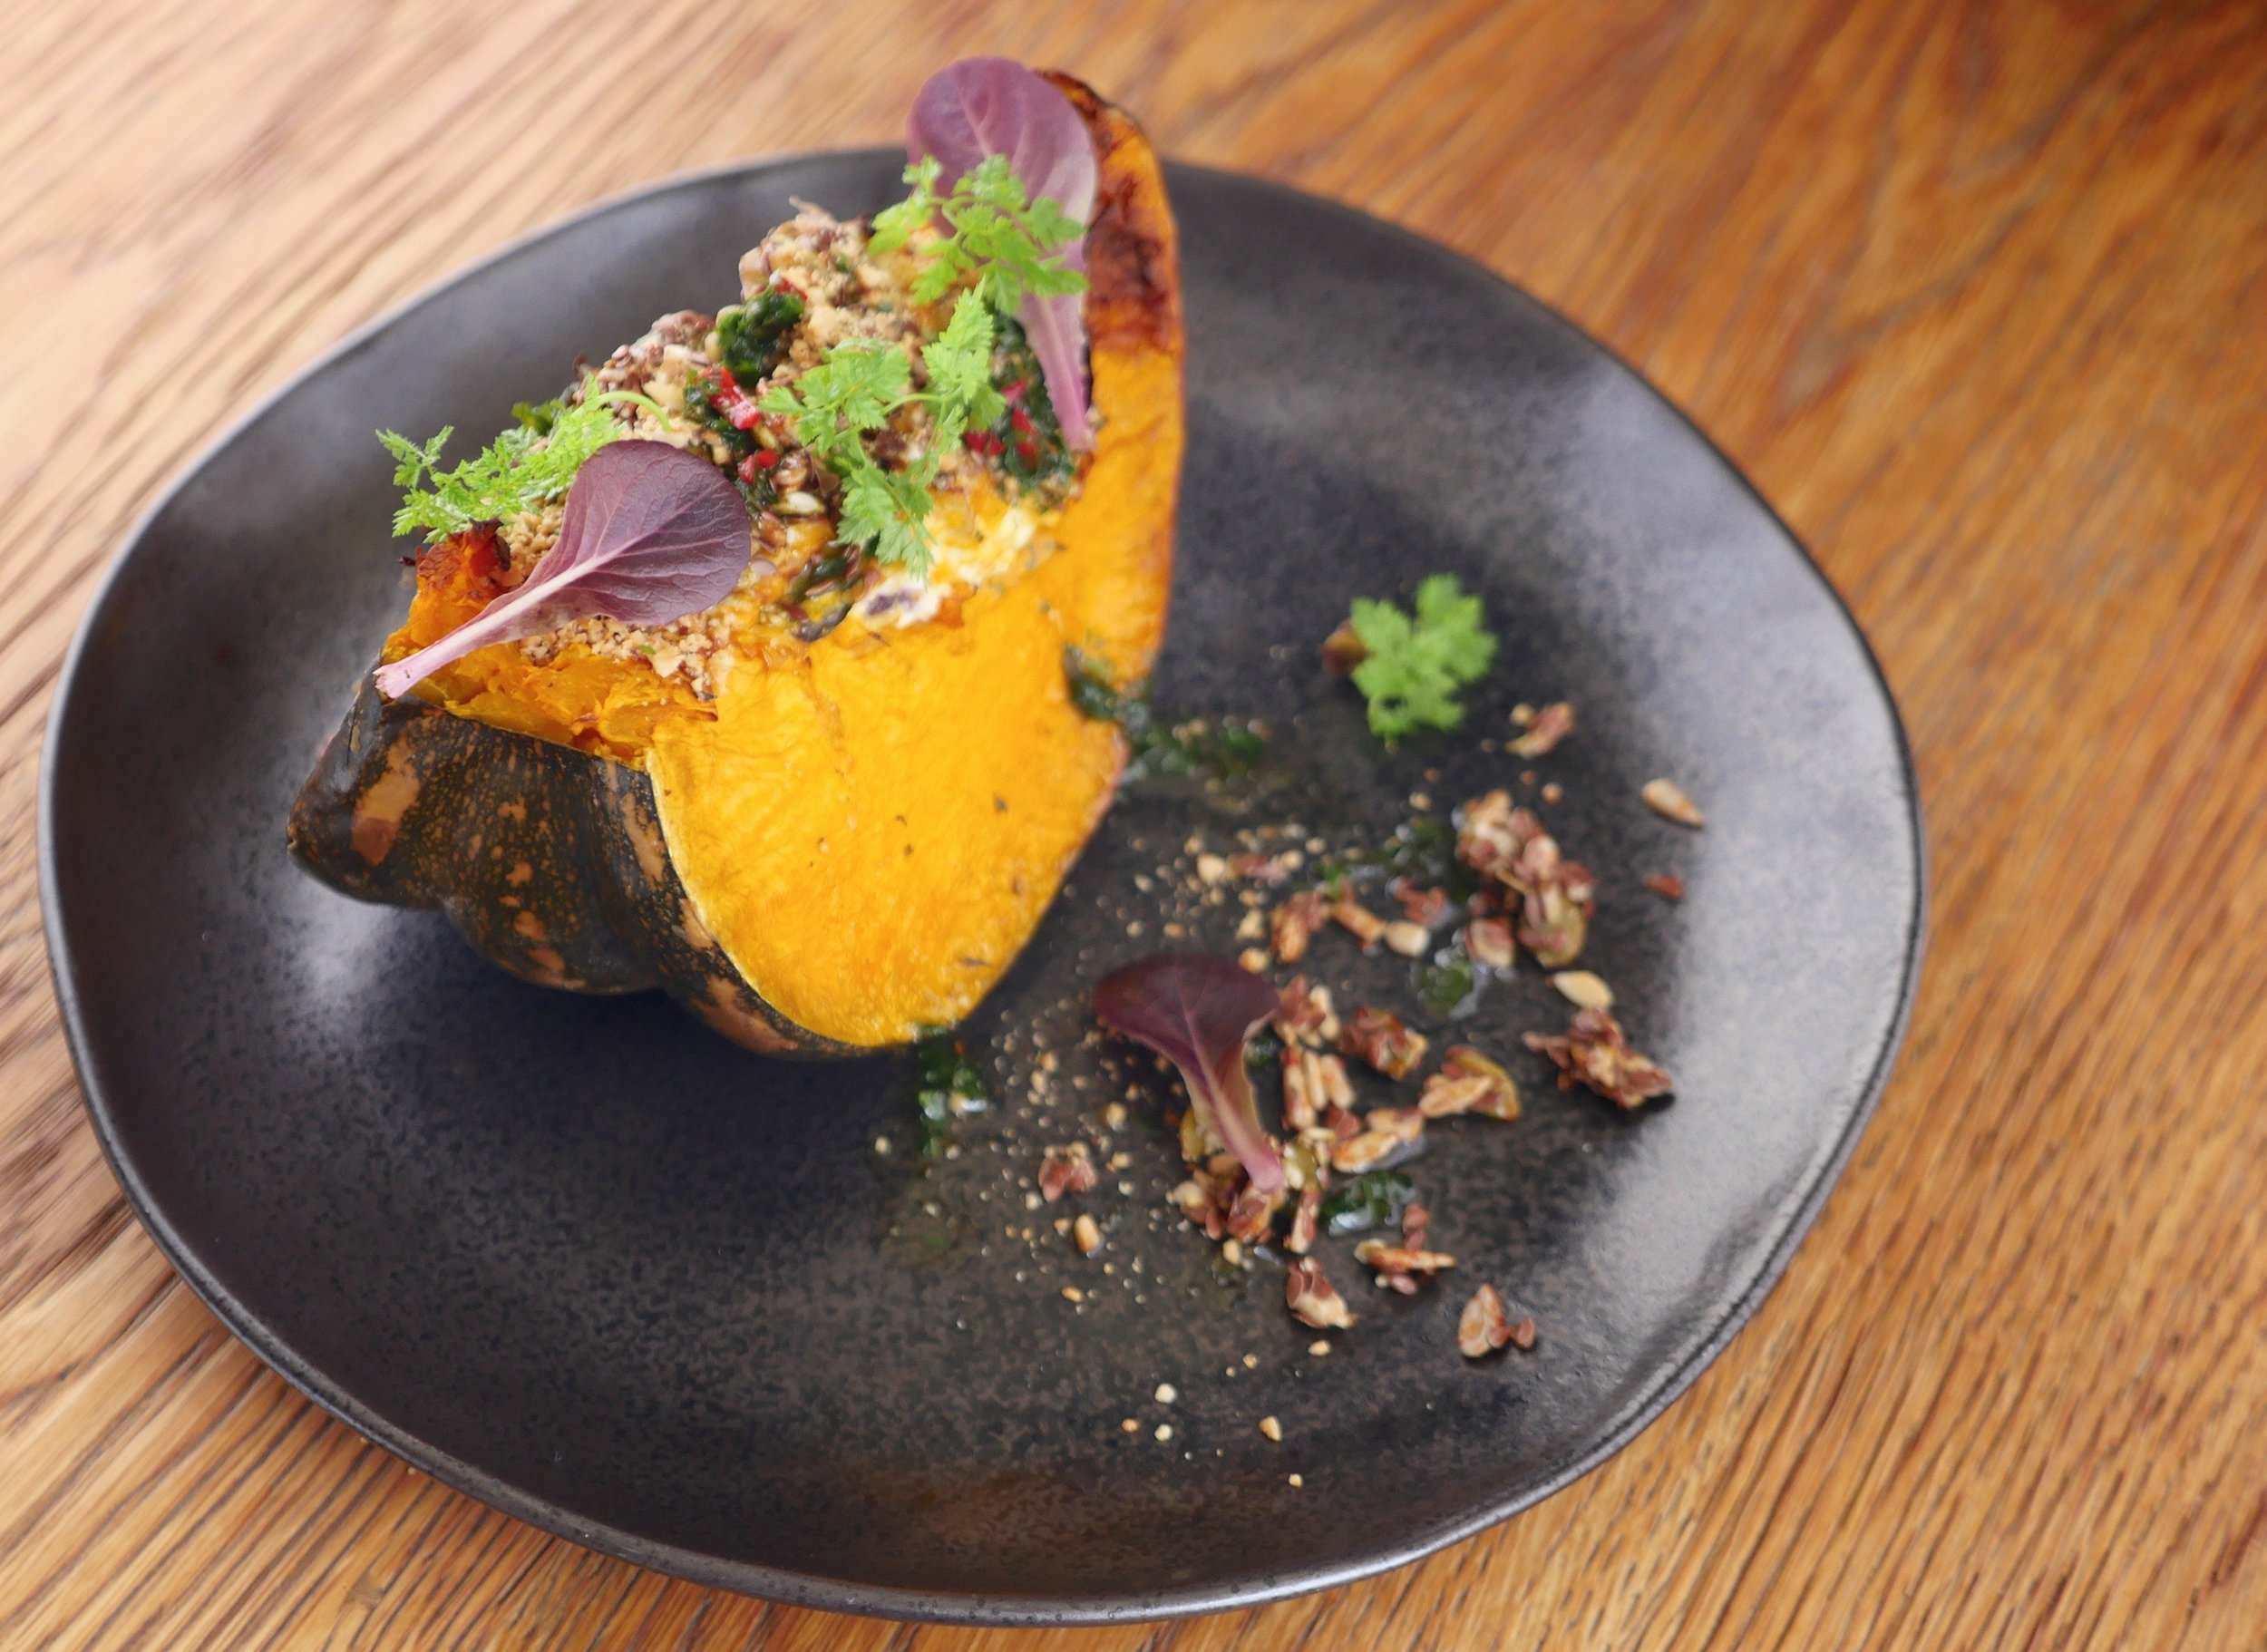 ROASTED GARDEN PUMPKIN, LOCAL GOAT CURD, PB BABY COS, TOASTED SEEDS